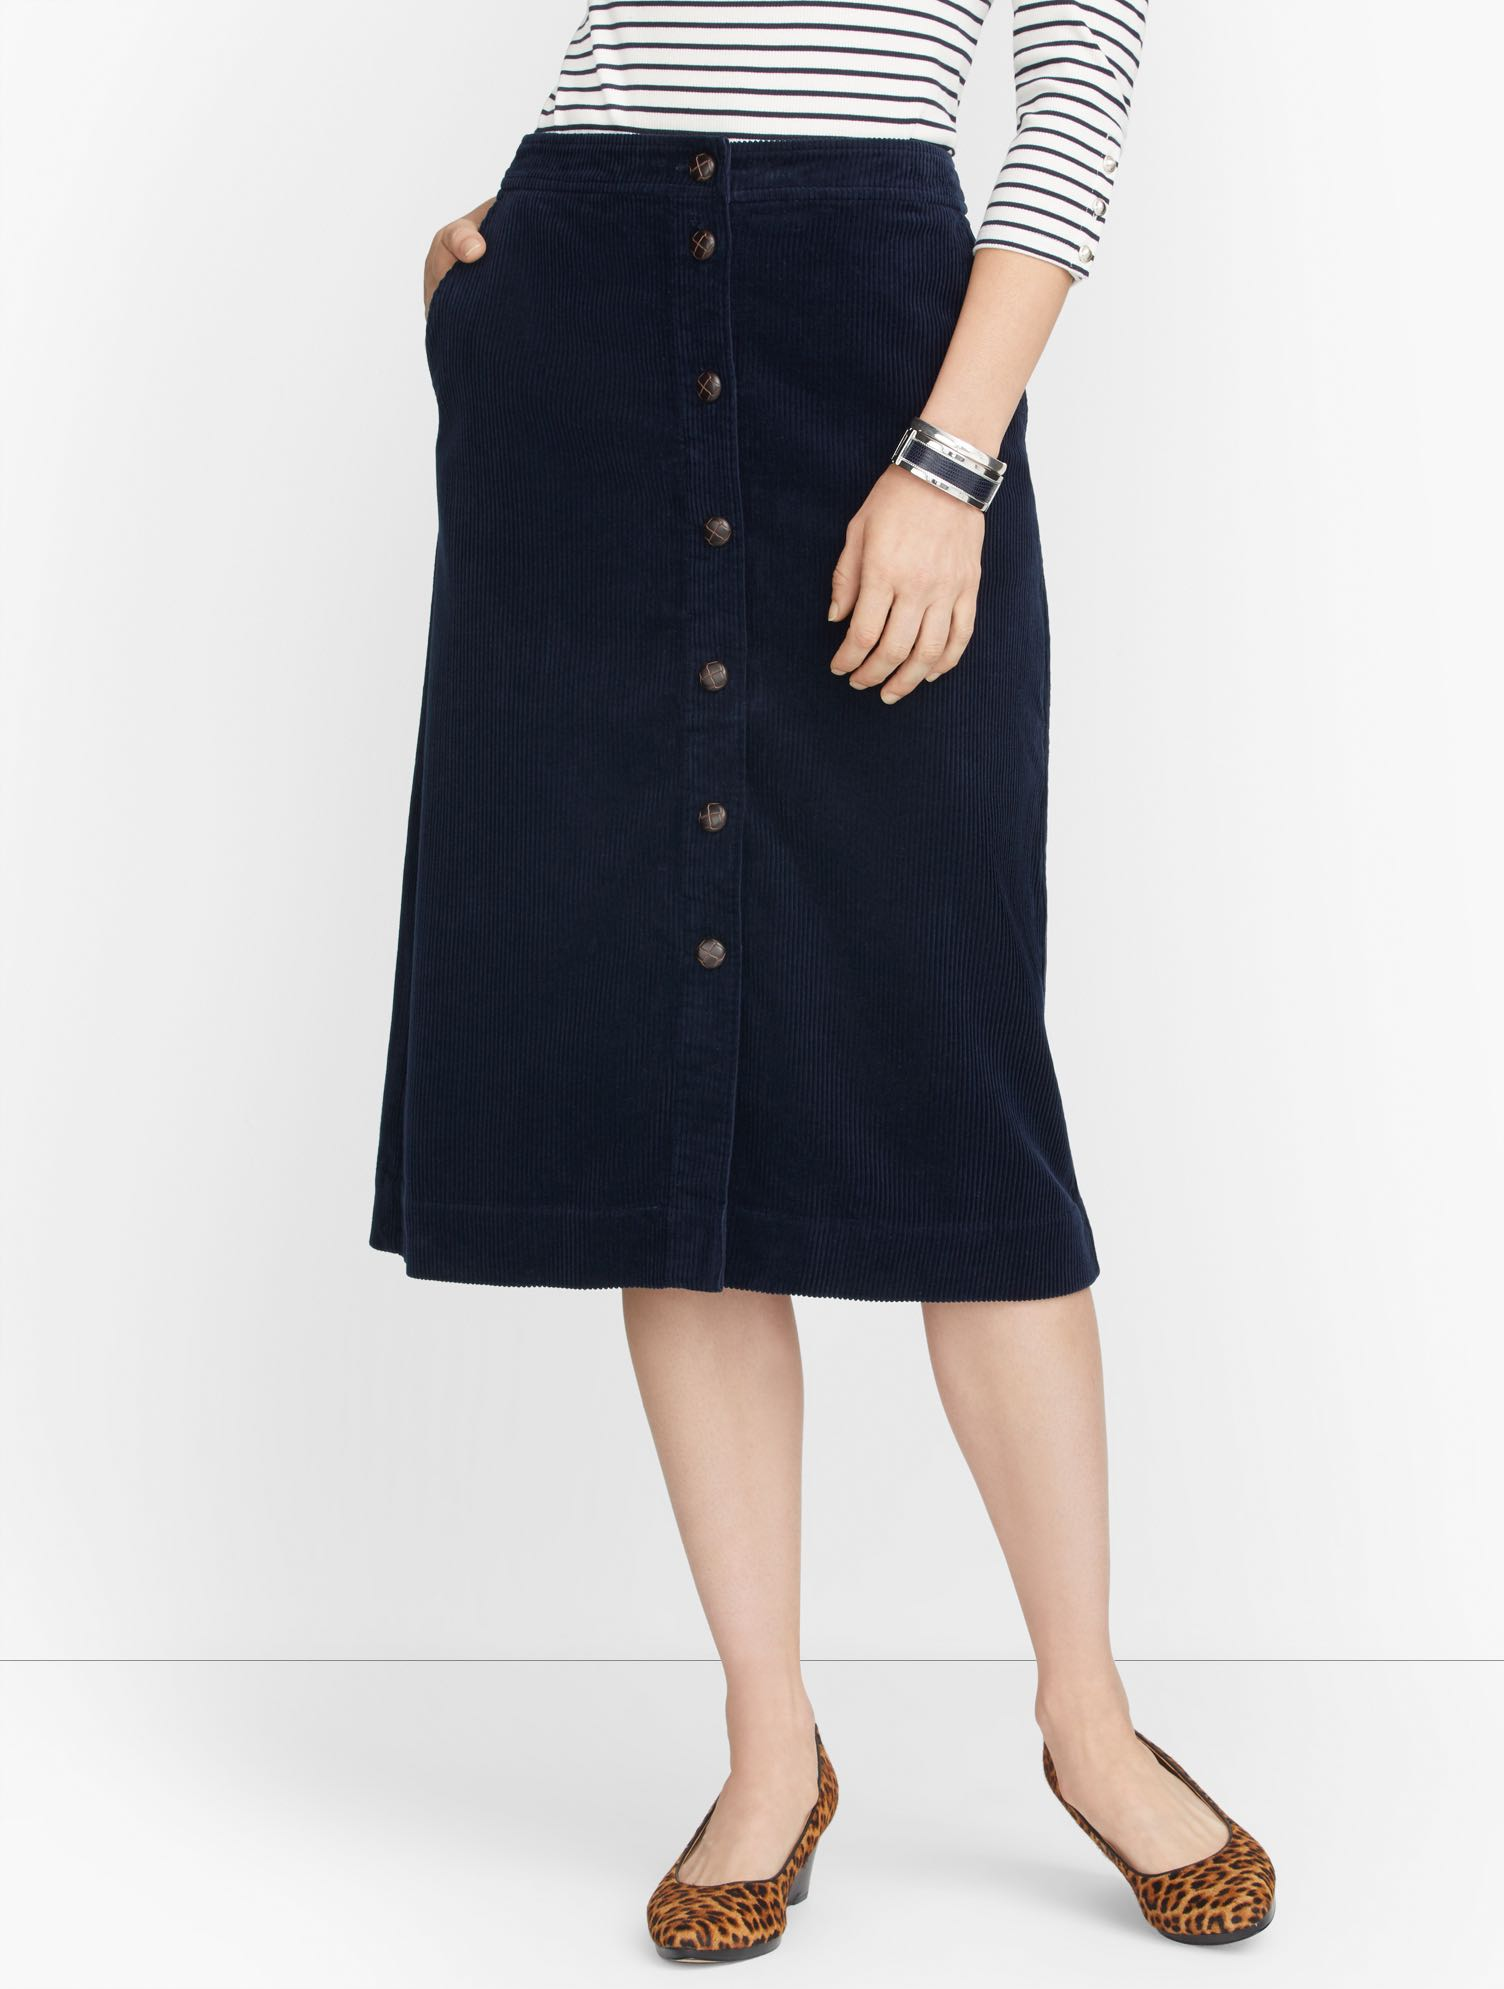 The corduroy button-front skirt. There\\\'s something about the plushness and warmth that just says fall. Features Silhouette: A-lineHits: Below KneeClosure: Button frontPockets: Front Slash & Back WeltImported Fit: Misses: 27 inches; Petite: 24 1/2 inches Material: 78% Cotton, 22% Lyocell Care: Machine Wash; Tumble Dry Corduroy Button Front Skirt - Blue - 16 Talbots